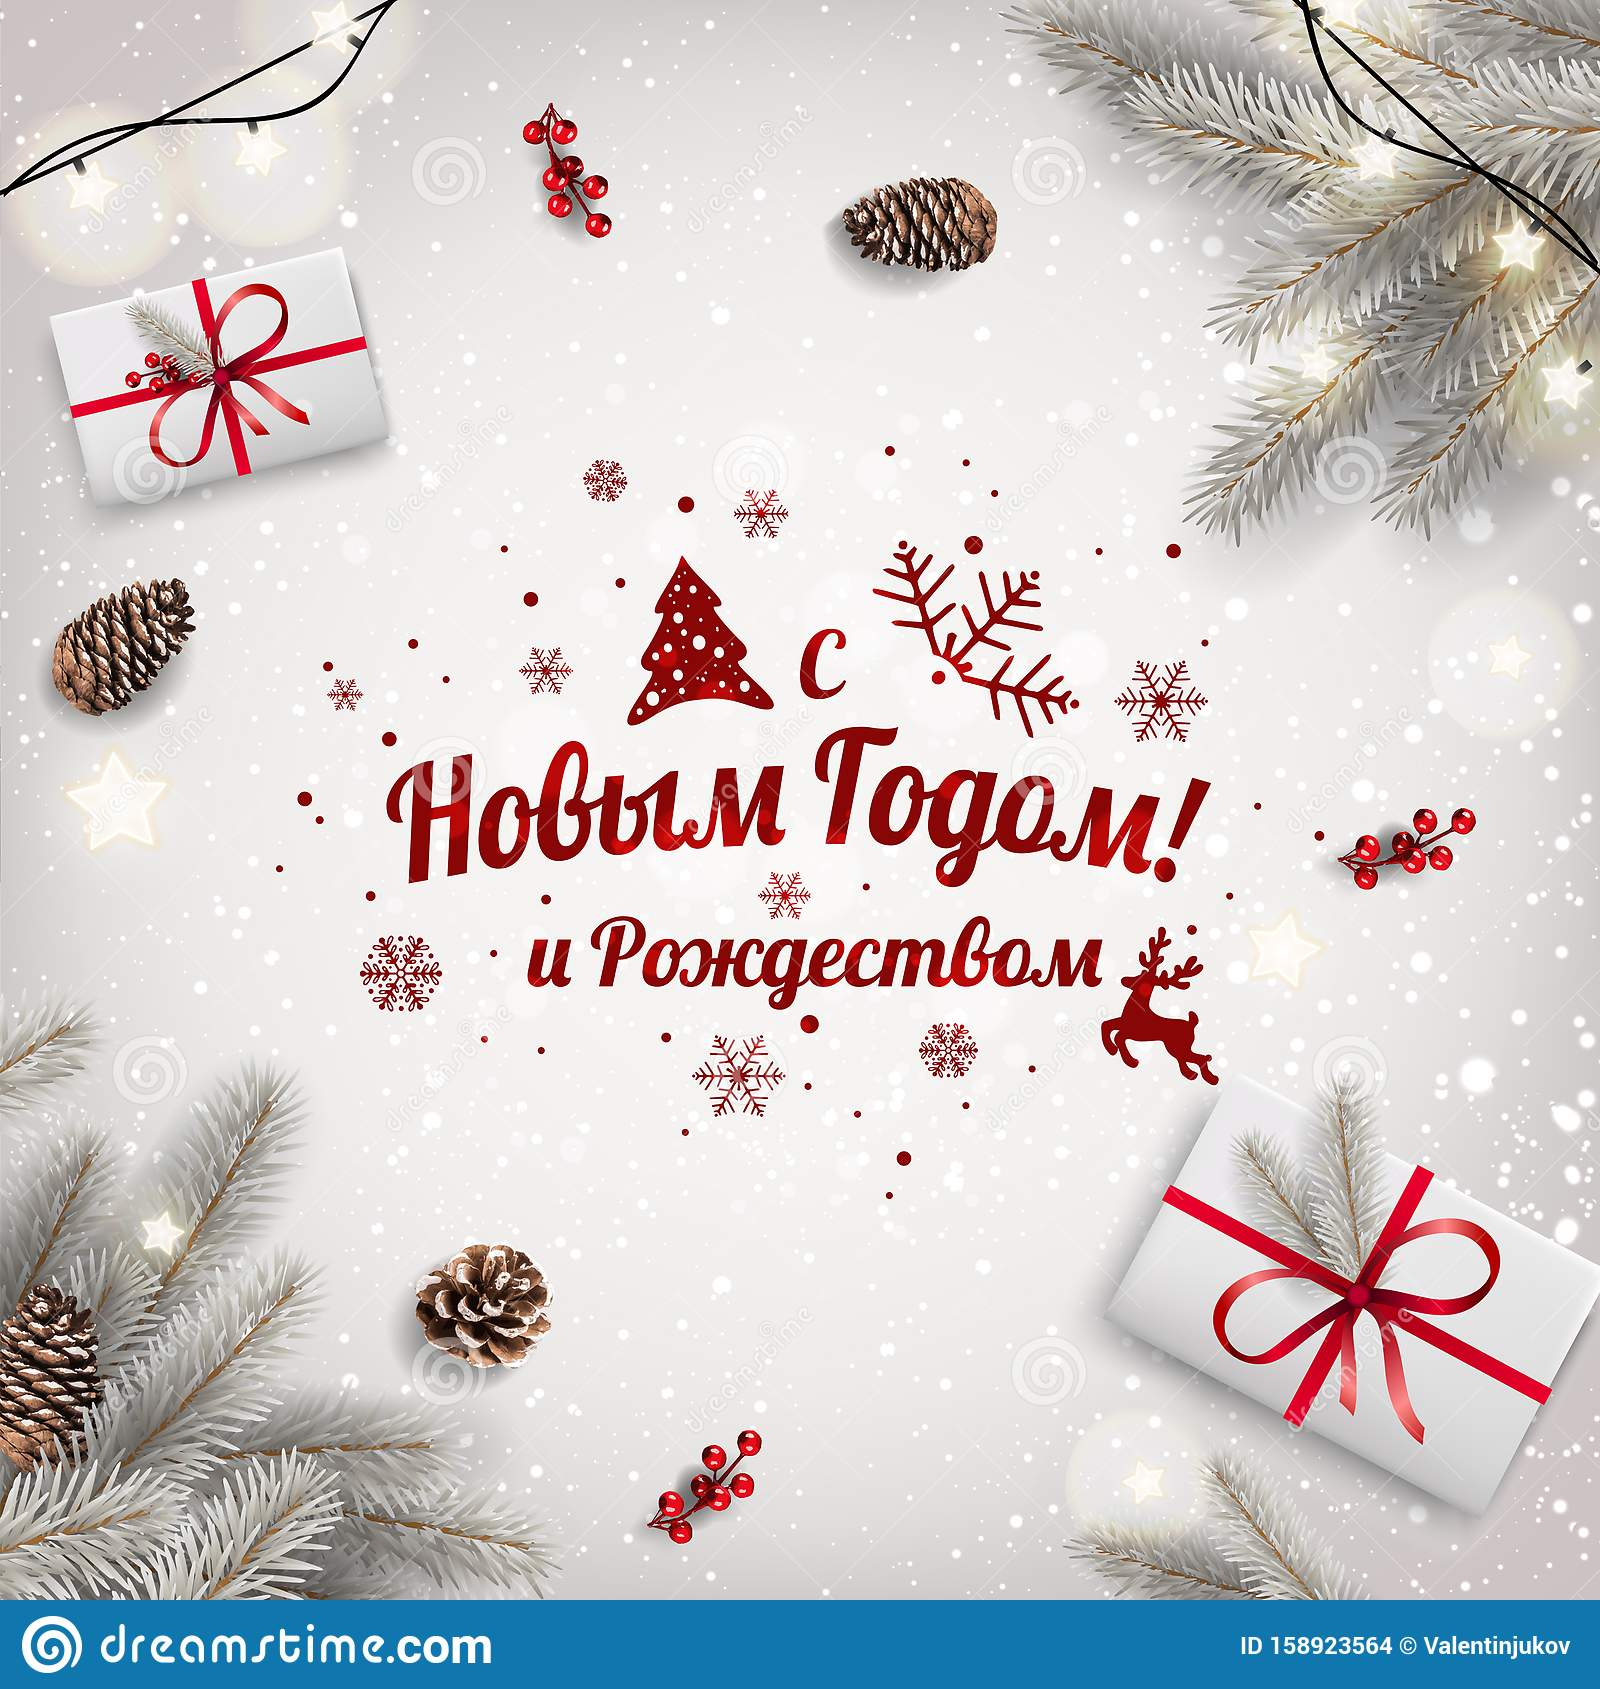 Merry Christmas 2020 Russian Text In Russian Language Happy New Year And Merry Christmas